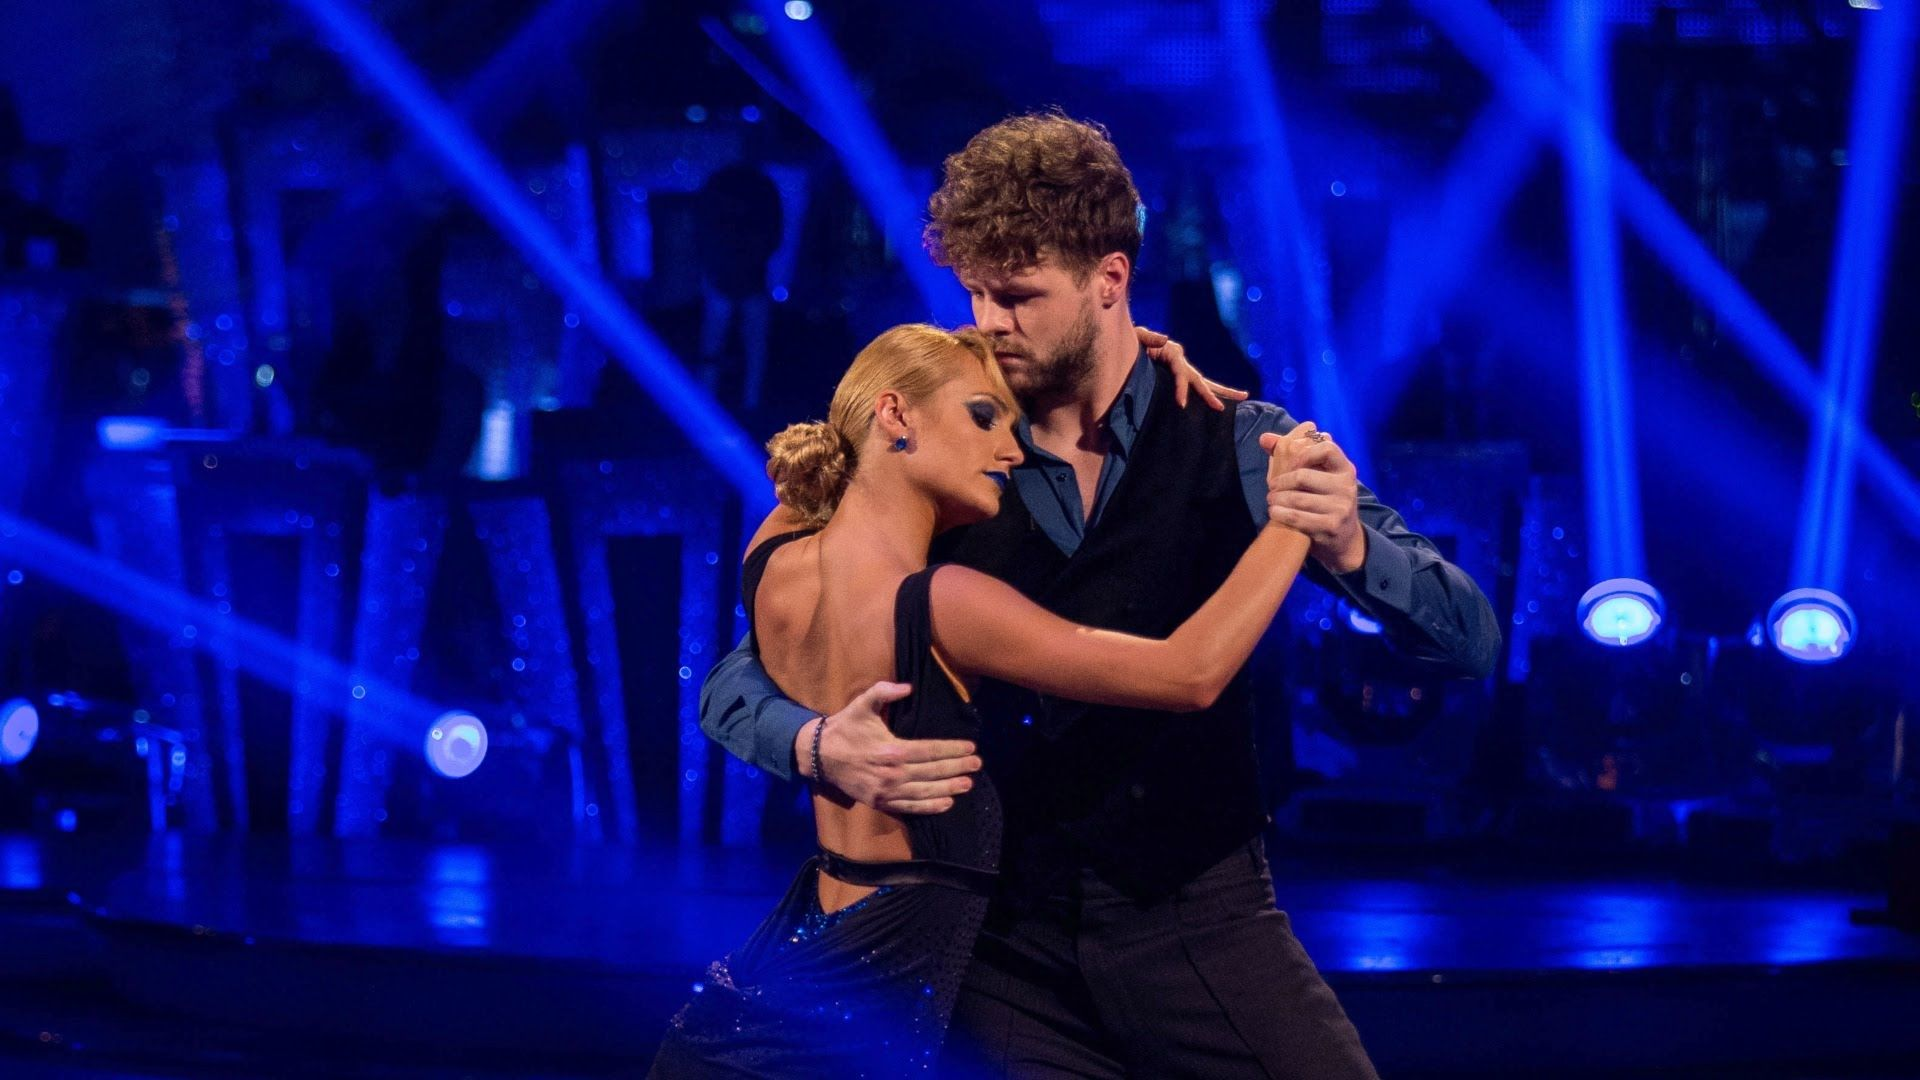 Jay Mcguiness Aliona Vilani Argentine Tango To Diferente Strictly Come Dancing 2015 Strictly Come Dancing Dance Videos Argentine Tango